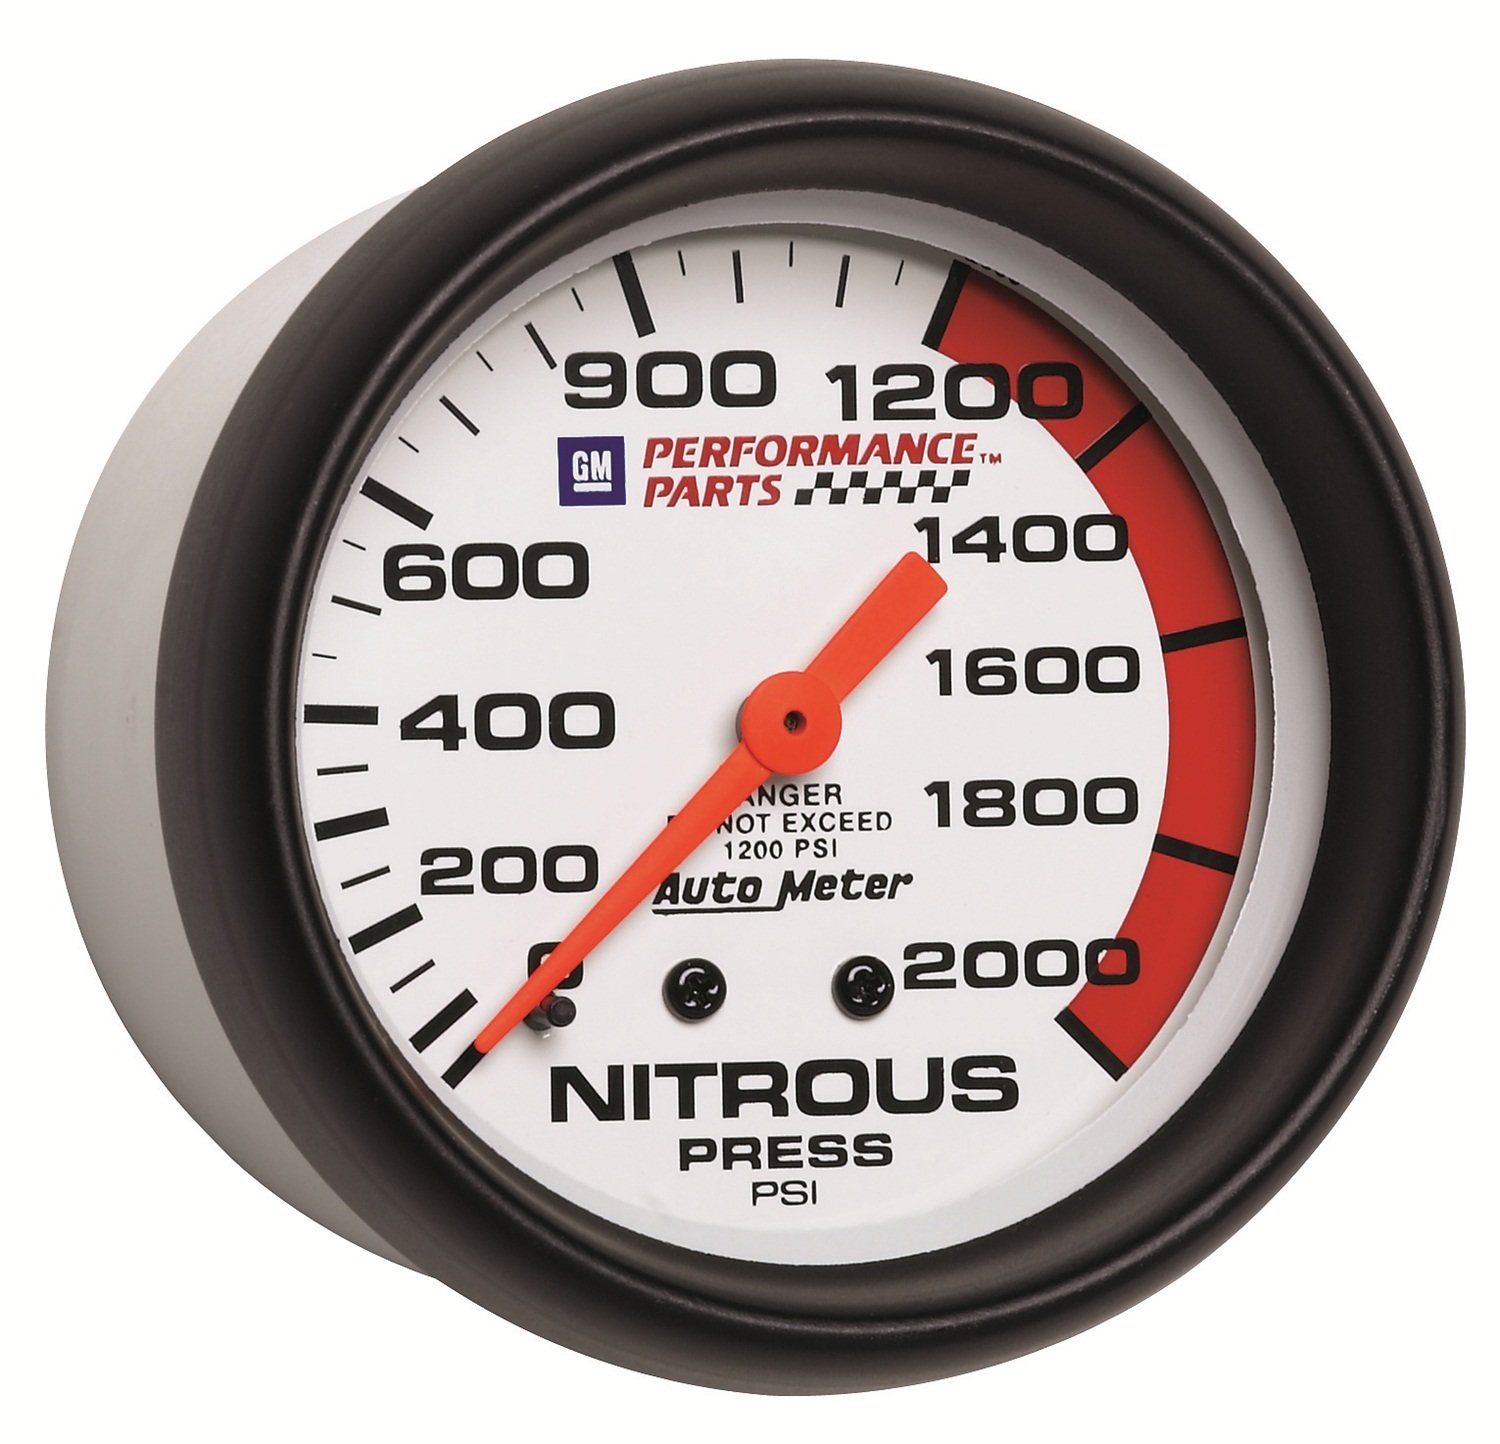 Auto Meter 5828-00407 GM Performance Parts 2-5/8'' 0-2000 PSI Mechanical Nitrous Pressure Gauge by Auto Meter